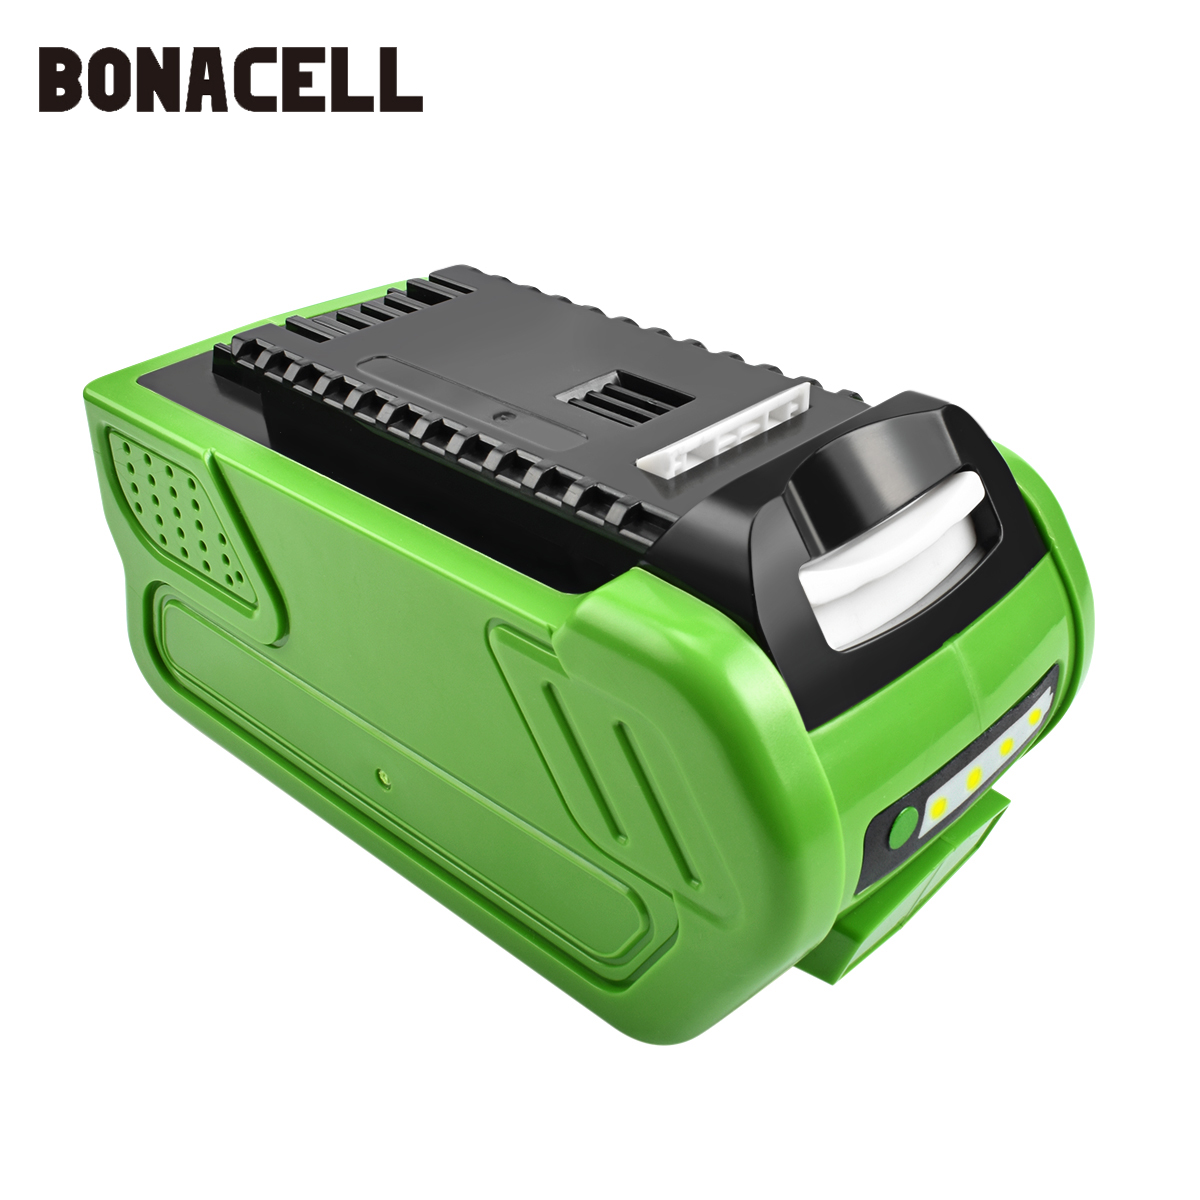 Bonacell 40V 6000mAh Rechargeable Replacement Battery For Creabest 40V 200W GreenWorks 29462 29472 22272 G-MAX GMAX L30